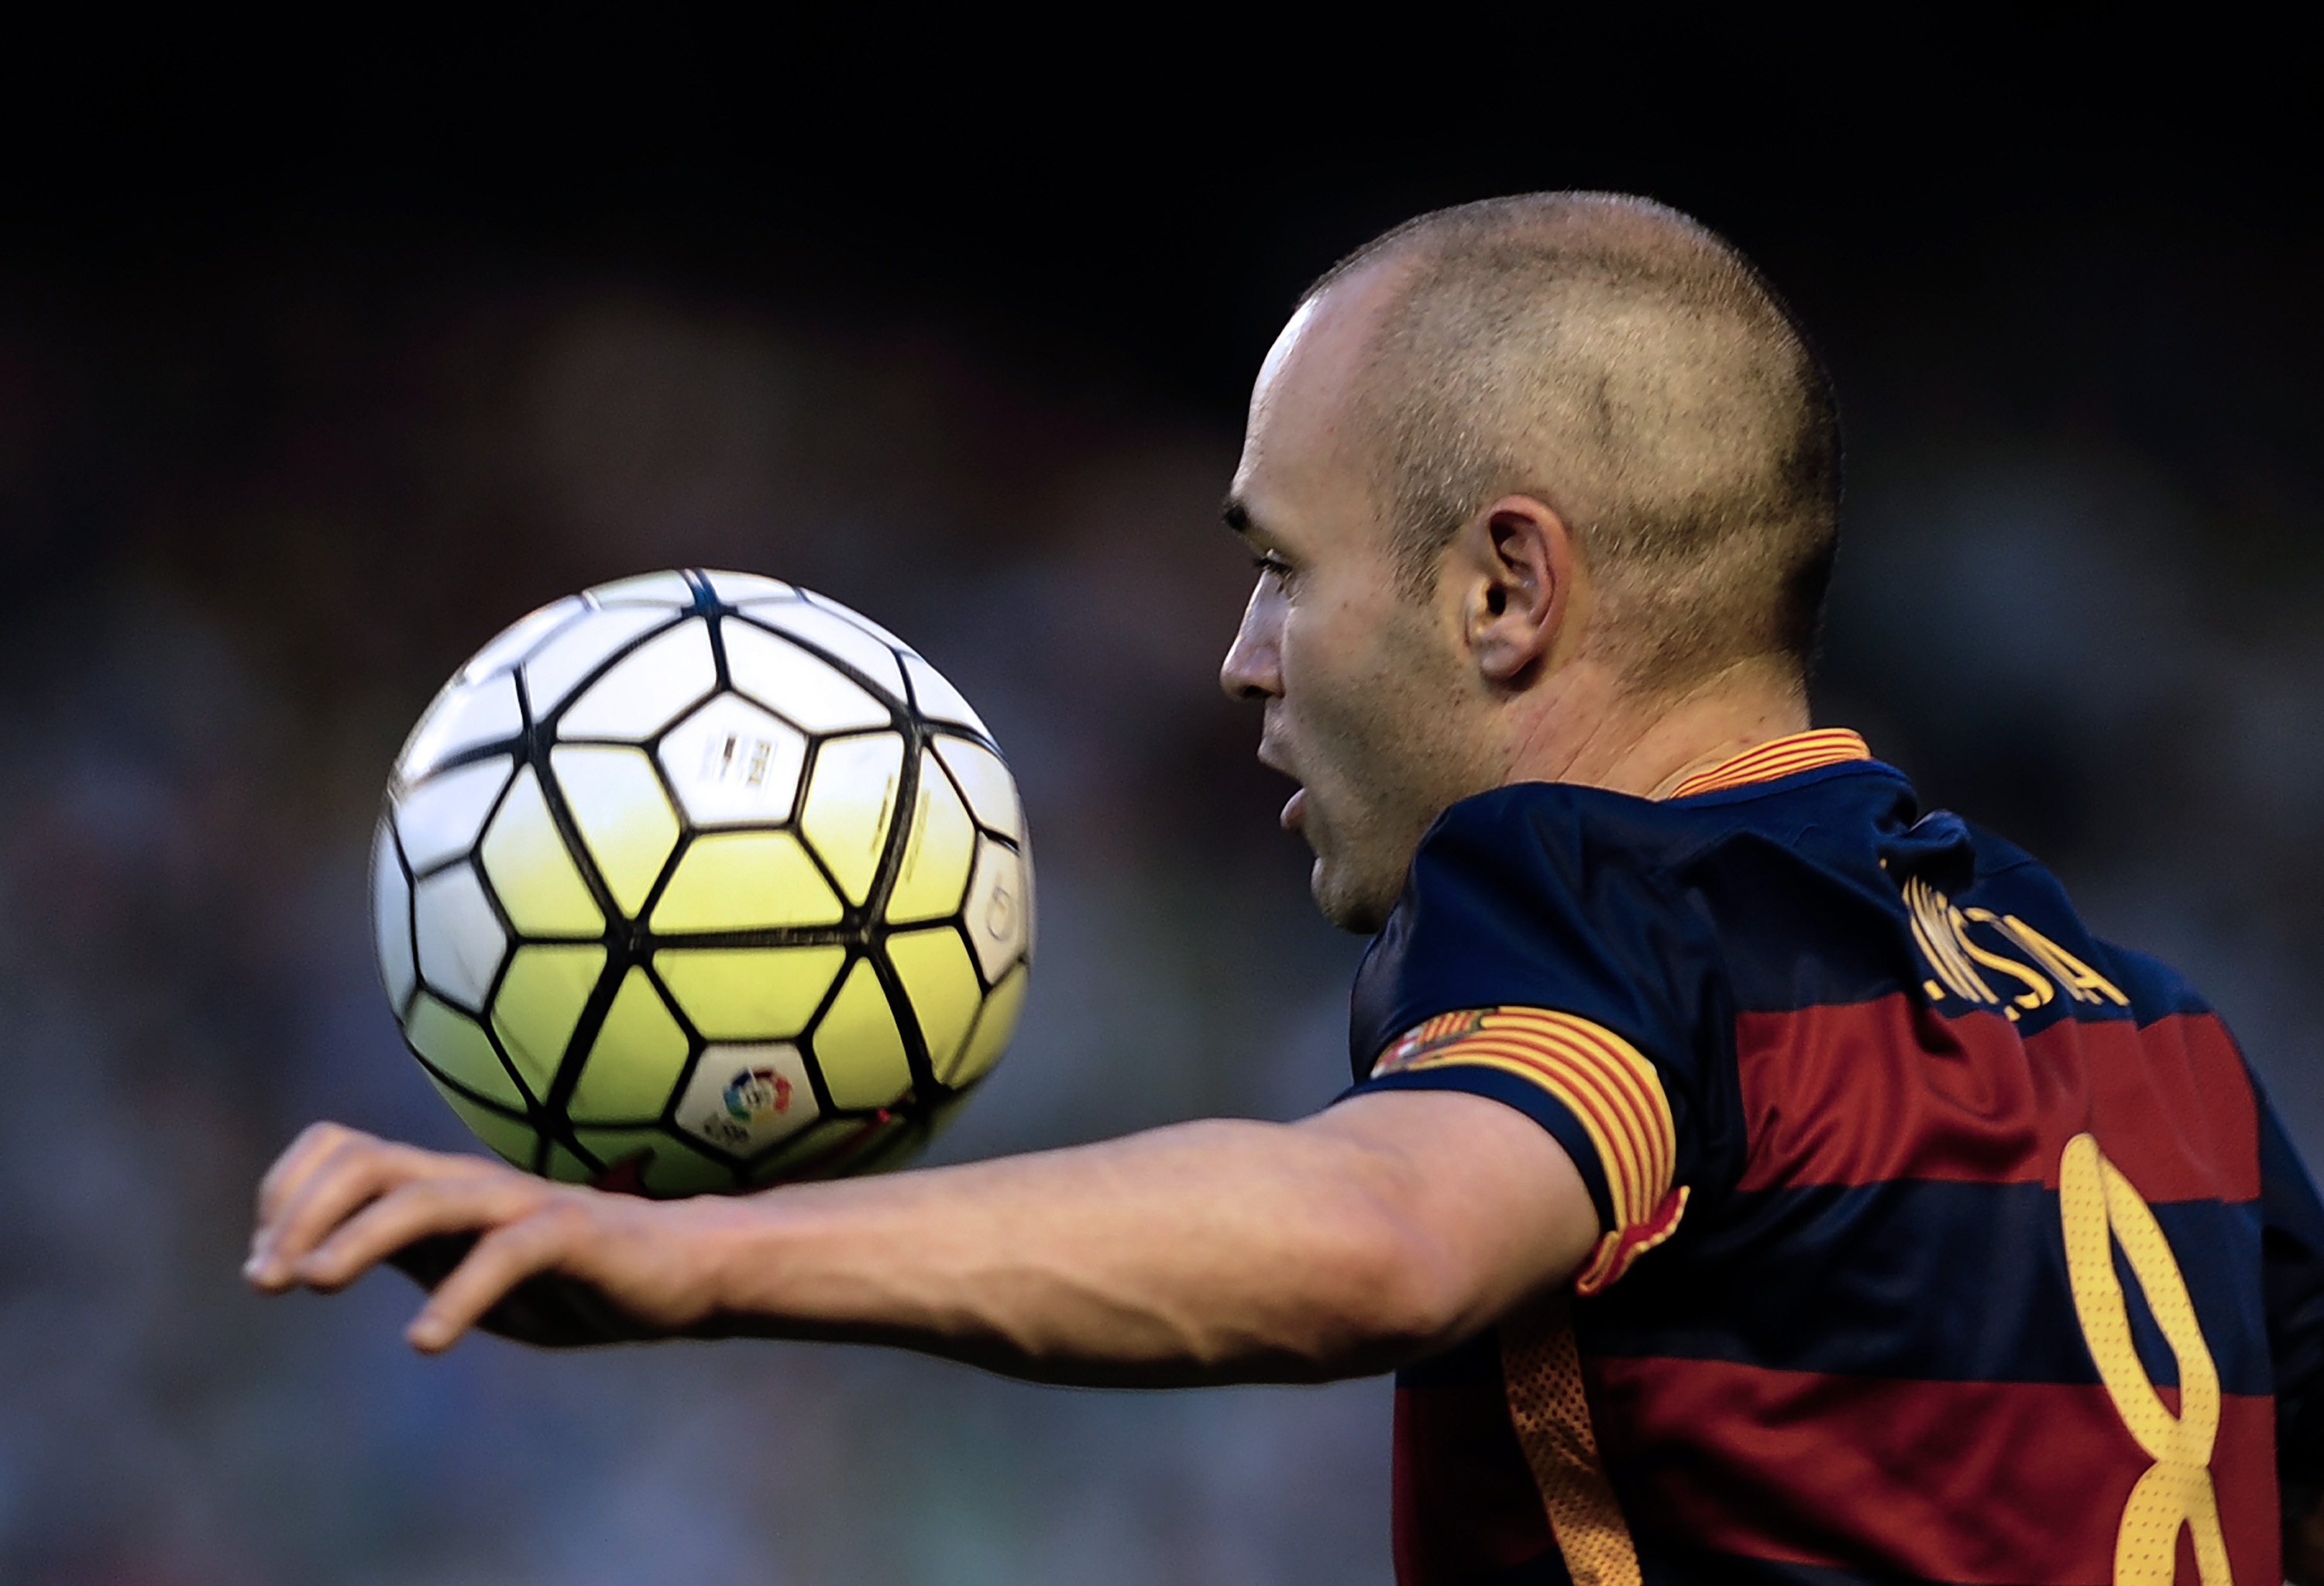 Barcelona's midfielder Andres Iniesta controls the ball during the Spanish league football match Real Betis Balompie vs FC Barcelona at the Benito Villamarin stadium in Sevilla on April 30, 2016. / AFP / CRISTINA QUICLER (Photo credit should read CRISTINA QUICLER/AFP/Getty Images)